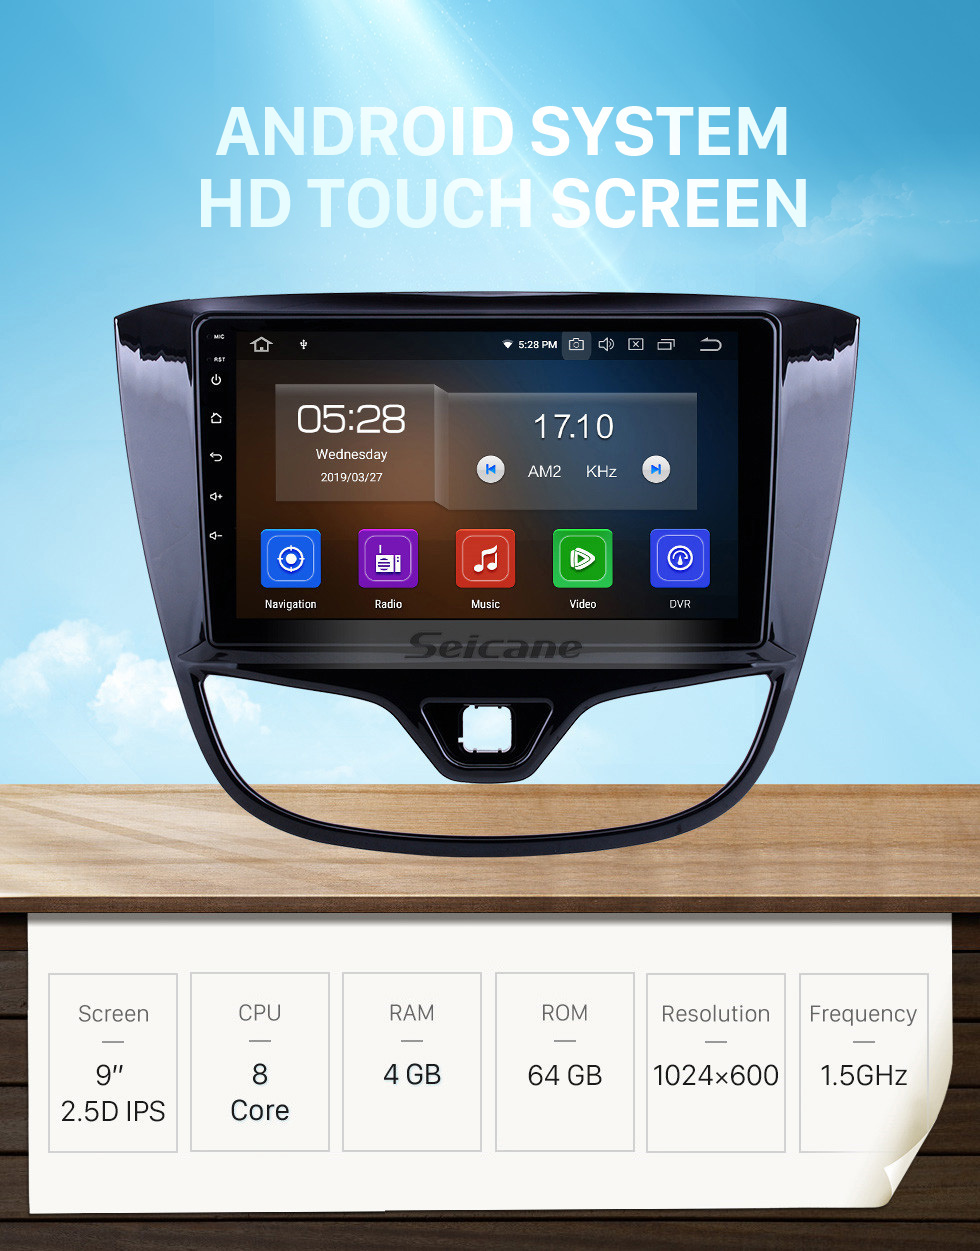 Seicane HD Touchscreen for 2017 Opel Karl/Vinfast Radio Android 10.0 9 inch GPS Navigation System Bluetooth Carplay support DAB+ DVR